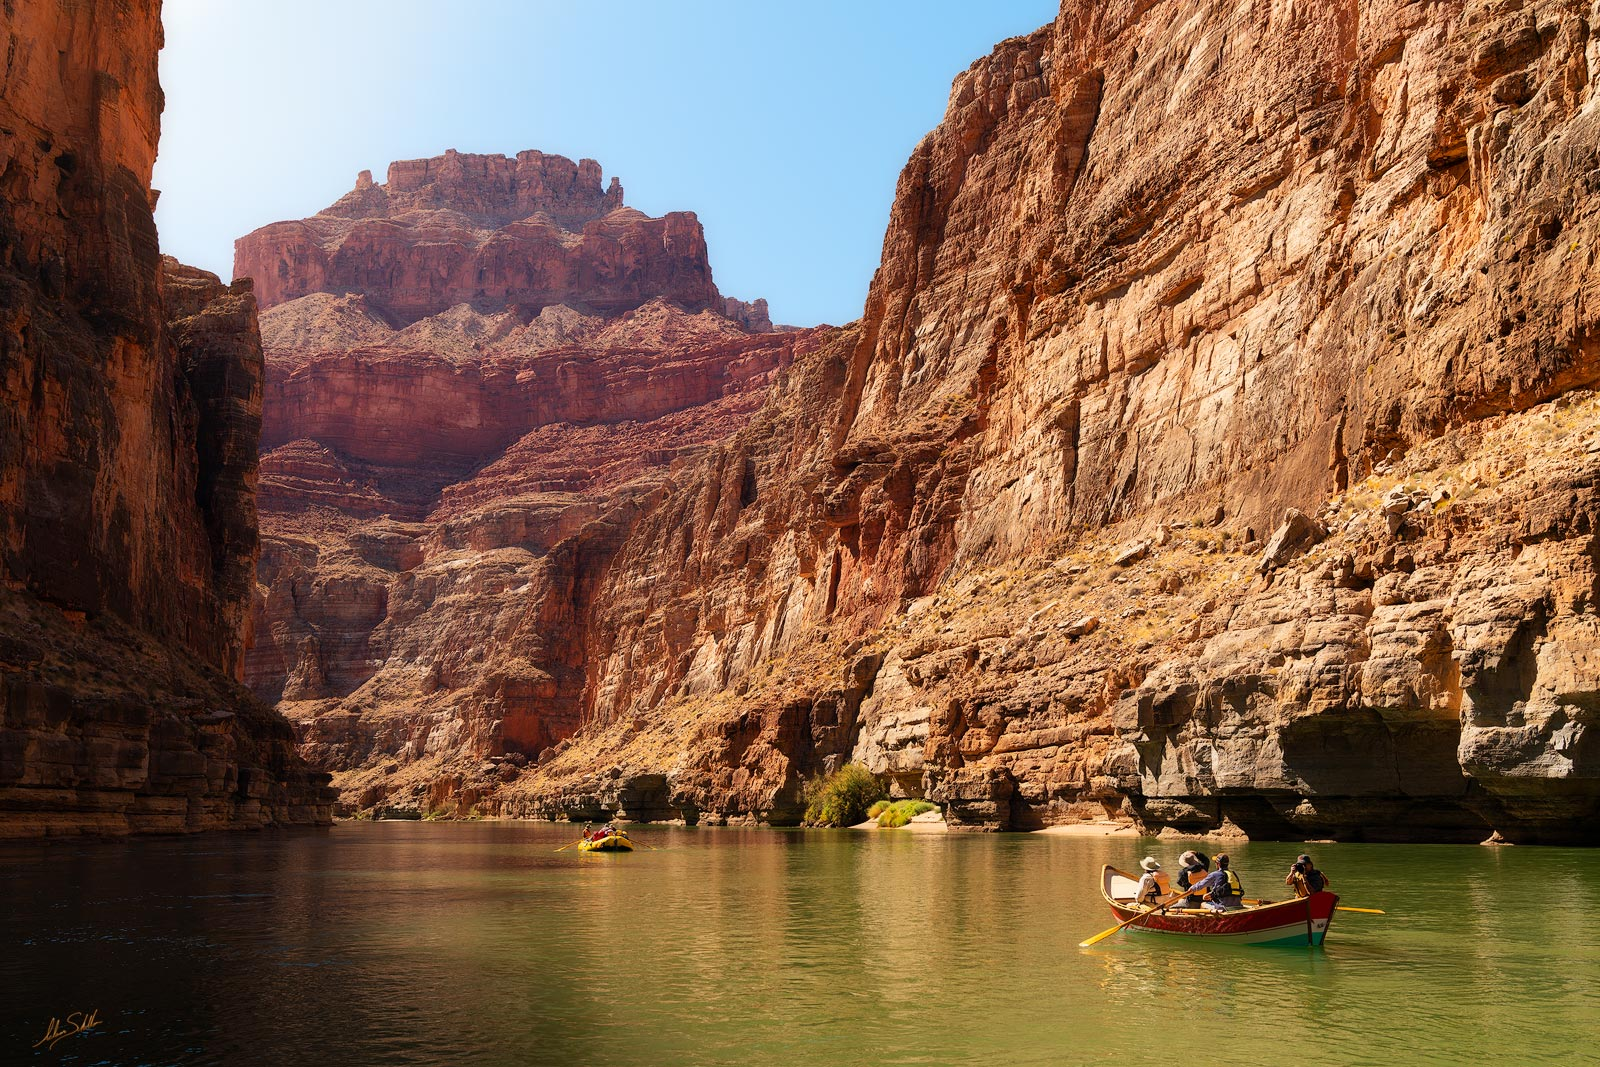 Below the Rim; Boat; Colorado River; Dory; Expedition; Grand Canyon; Marble Canyon; National Park; Rafting; Rafting the Colorado River; Rafting the Grand Canyon; River Trip, photo